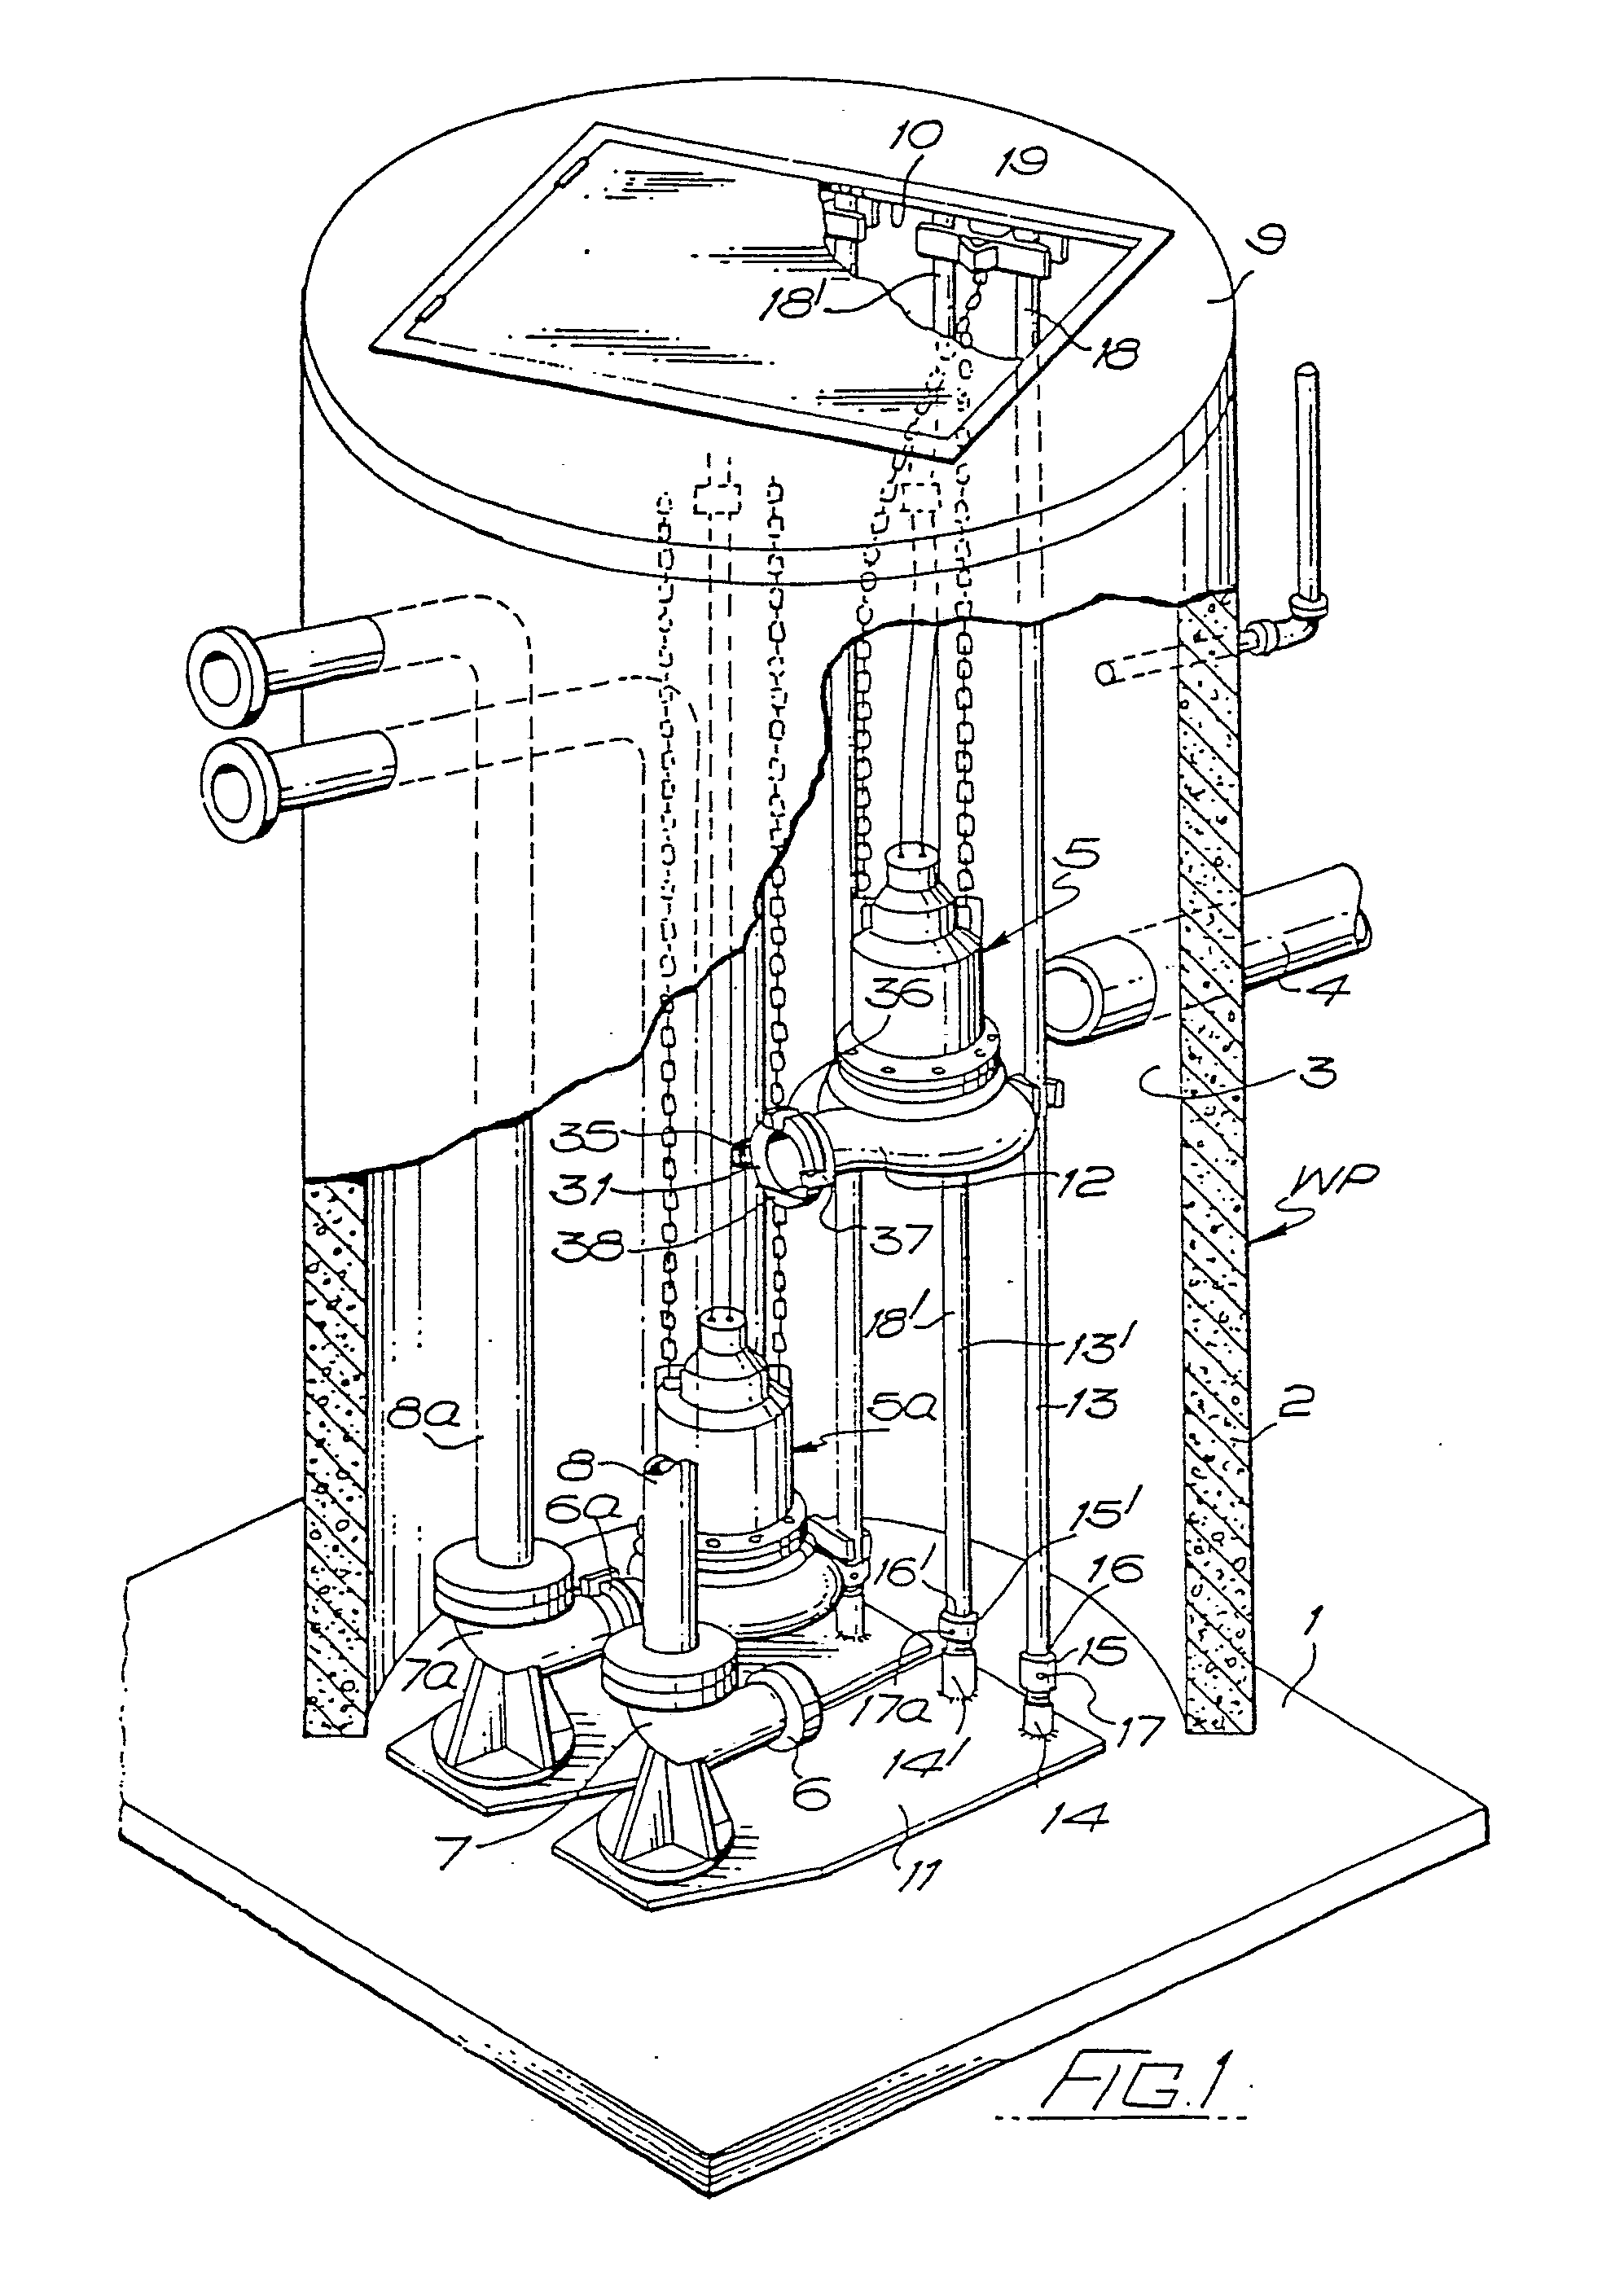 Sr20det Wiring Diagram in addition Goulds Submersible Pump Wiring Diagram together with Vertical Can Pump Diagrams also 00002 together with Deep Well Jet Pump Diagram. on goulds jet pump diagram